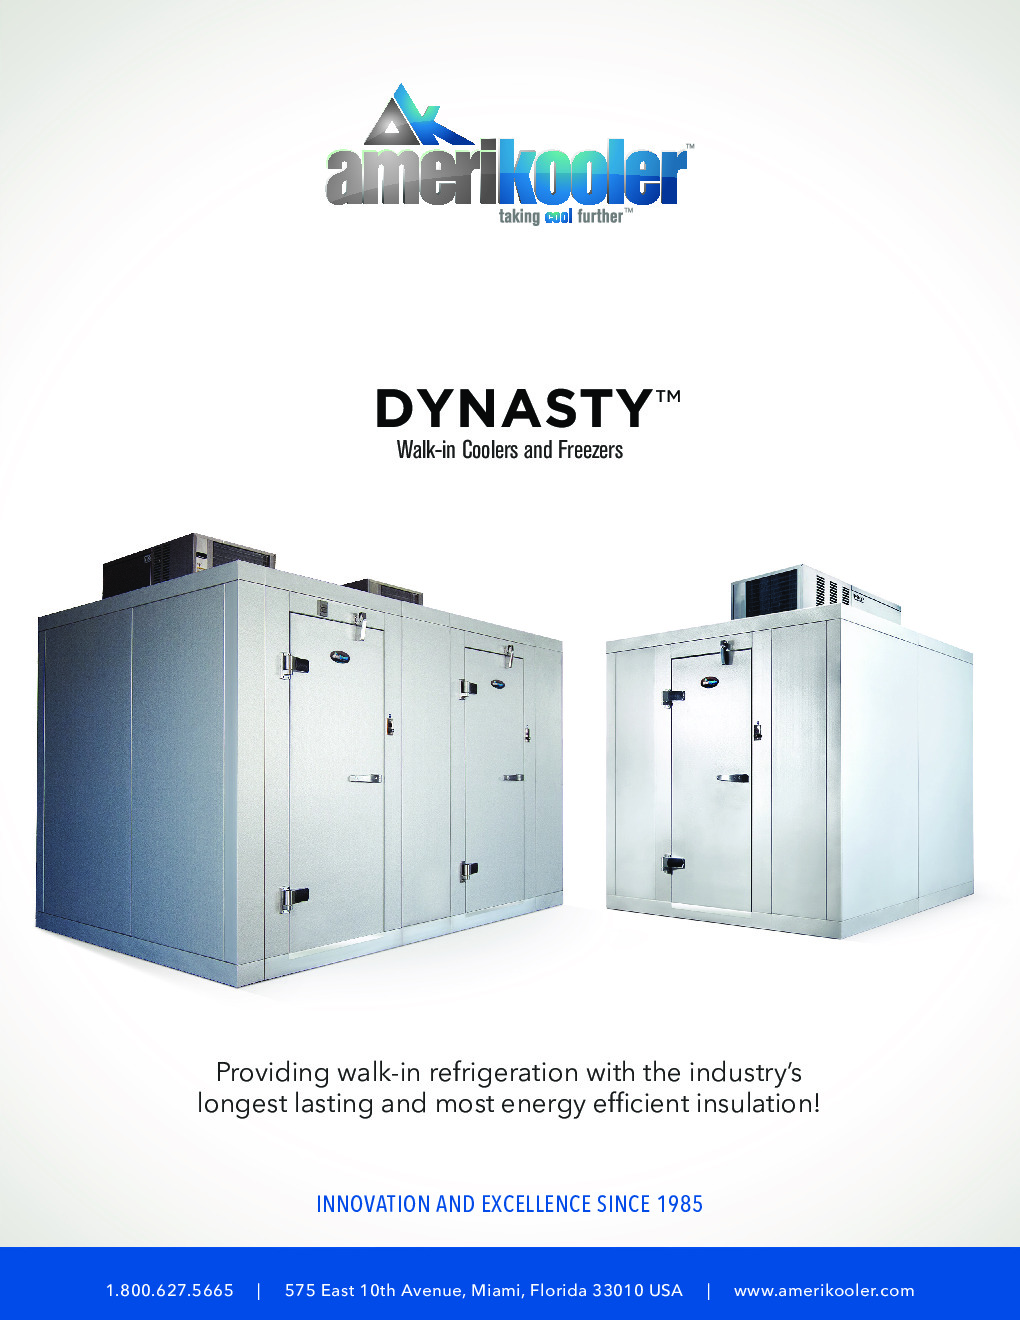 AmeriKooler DW081877N-6/12-SC 8' X 18' Walk-In Cooler, 12' L Cooler without Floor and 6' L Freezer, Self Contained